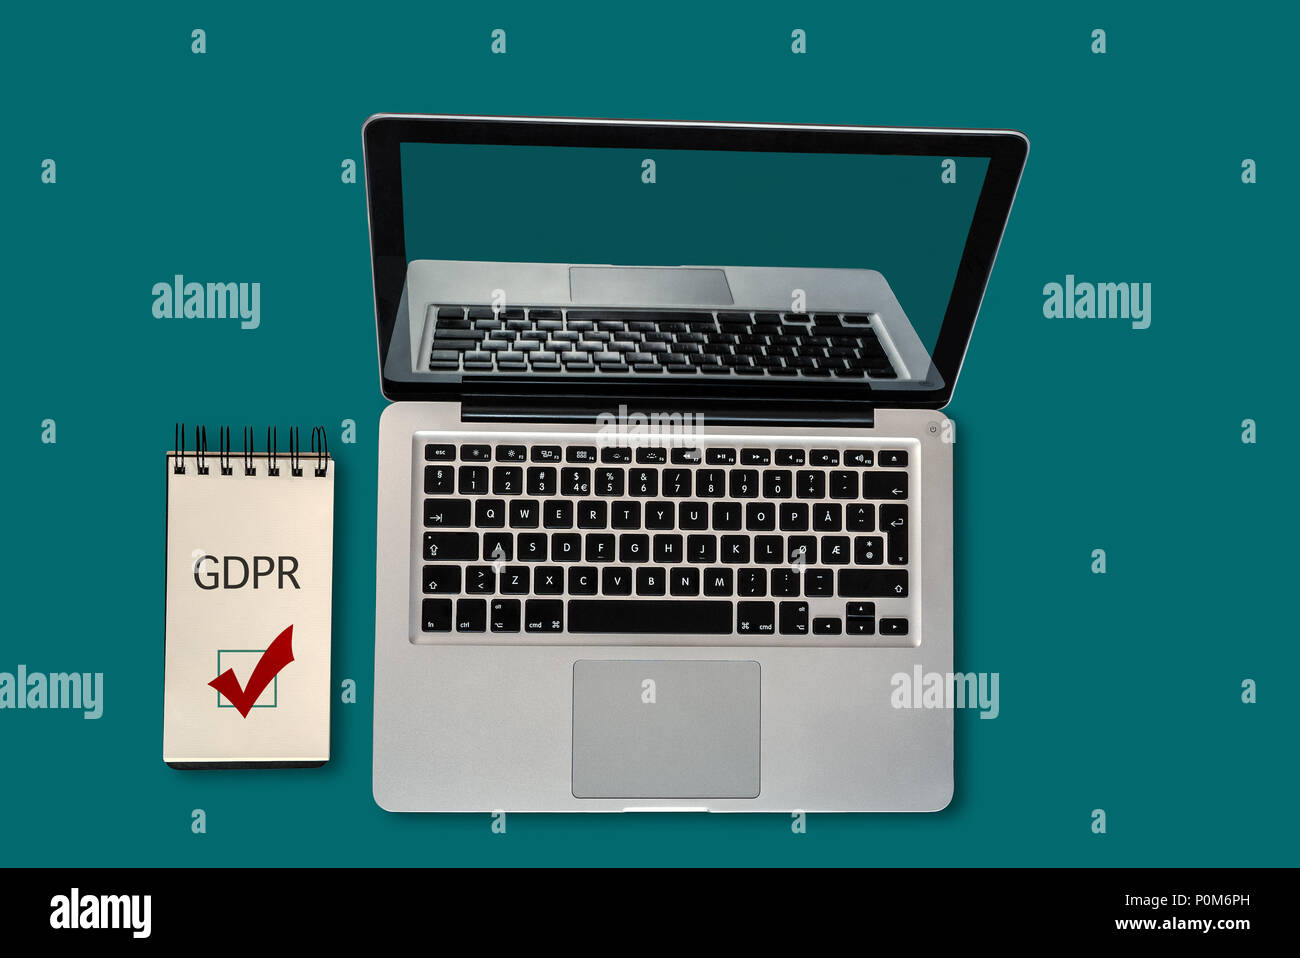 Top view of a laptop and a notepad with GDPR and a ticked checkbox on it, with copyspace - Stock Image